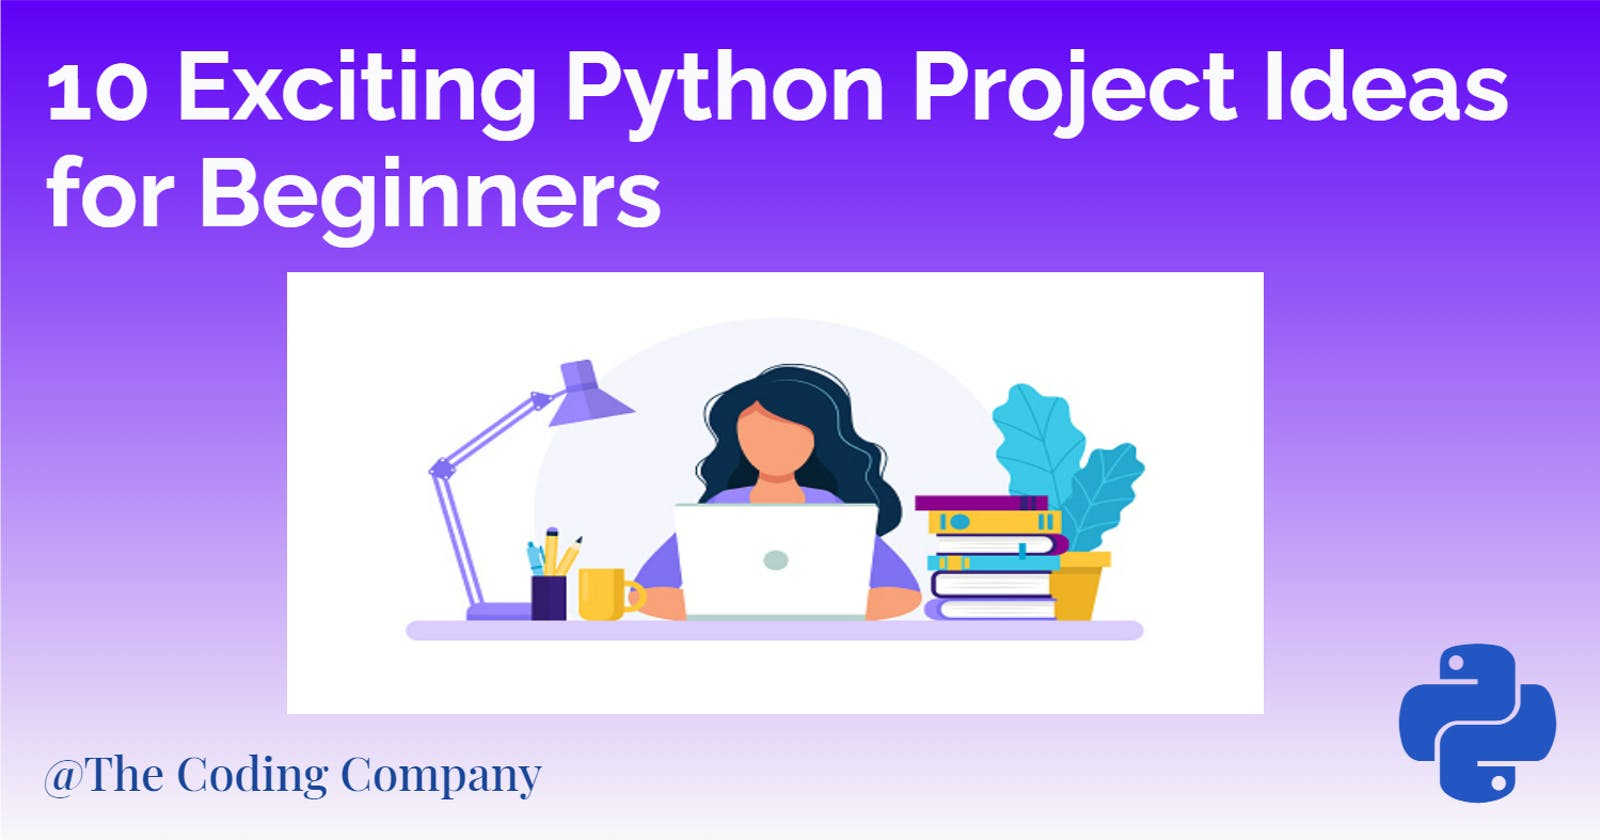 10 Exciting Python Project Ideas for Beginners